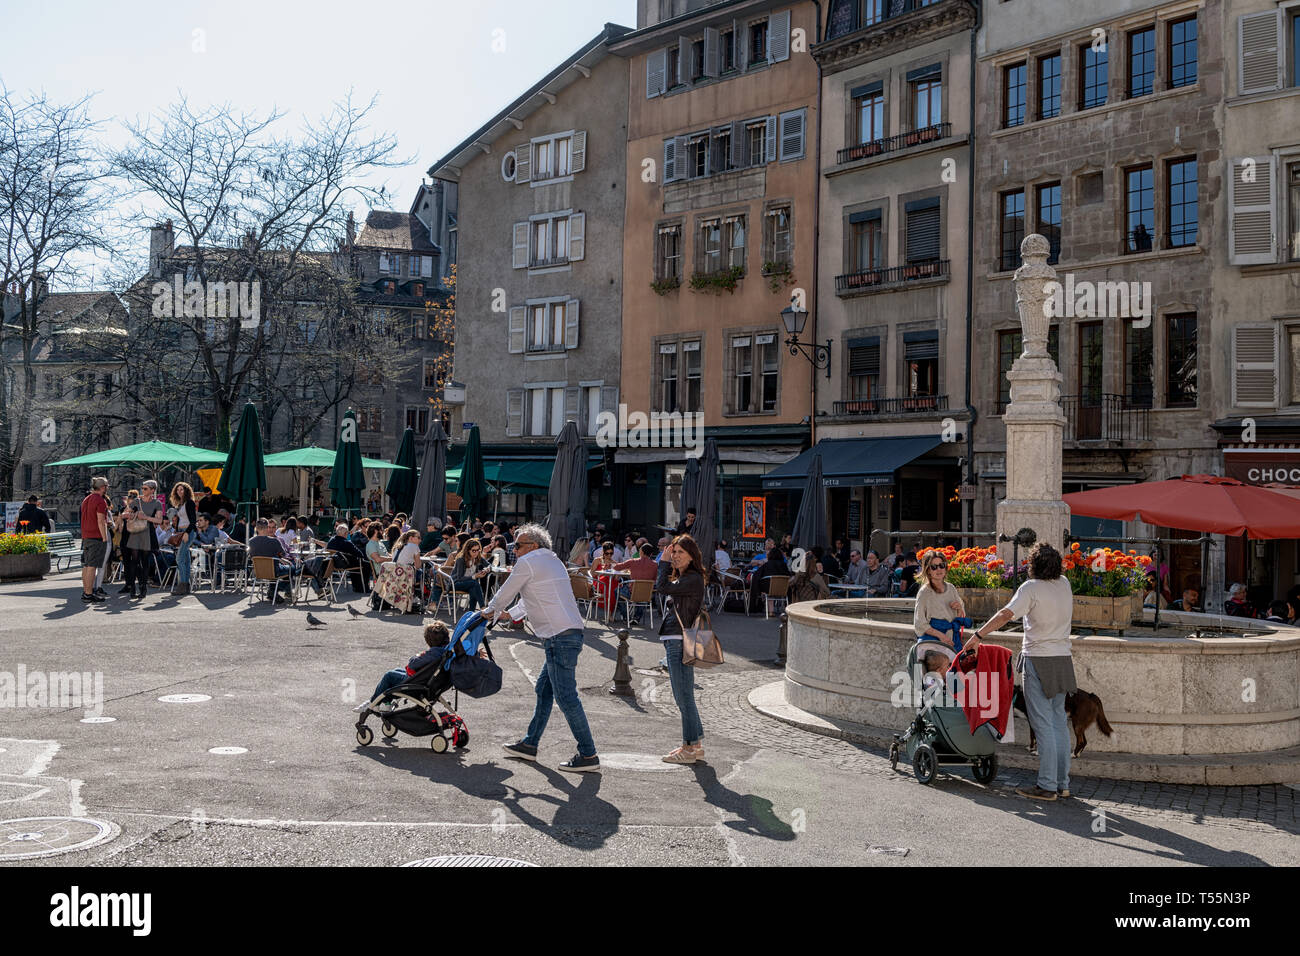 The Place du Bourg-de-Four in the old town of Geneva, Switzerland with it's fountain, restaurants and cafes and people walking about and around. - Stock Image